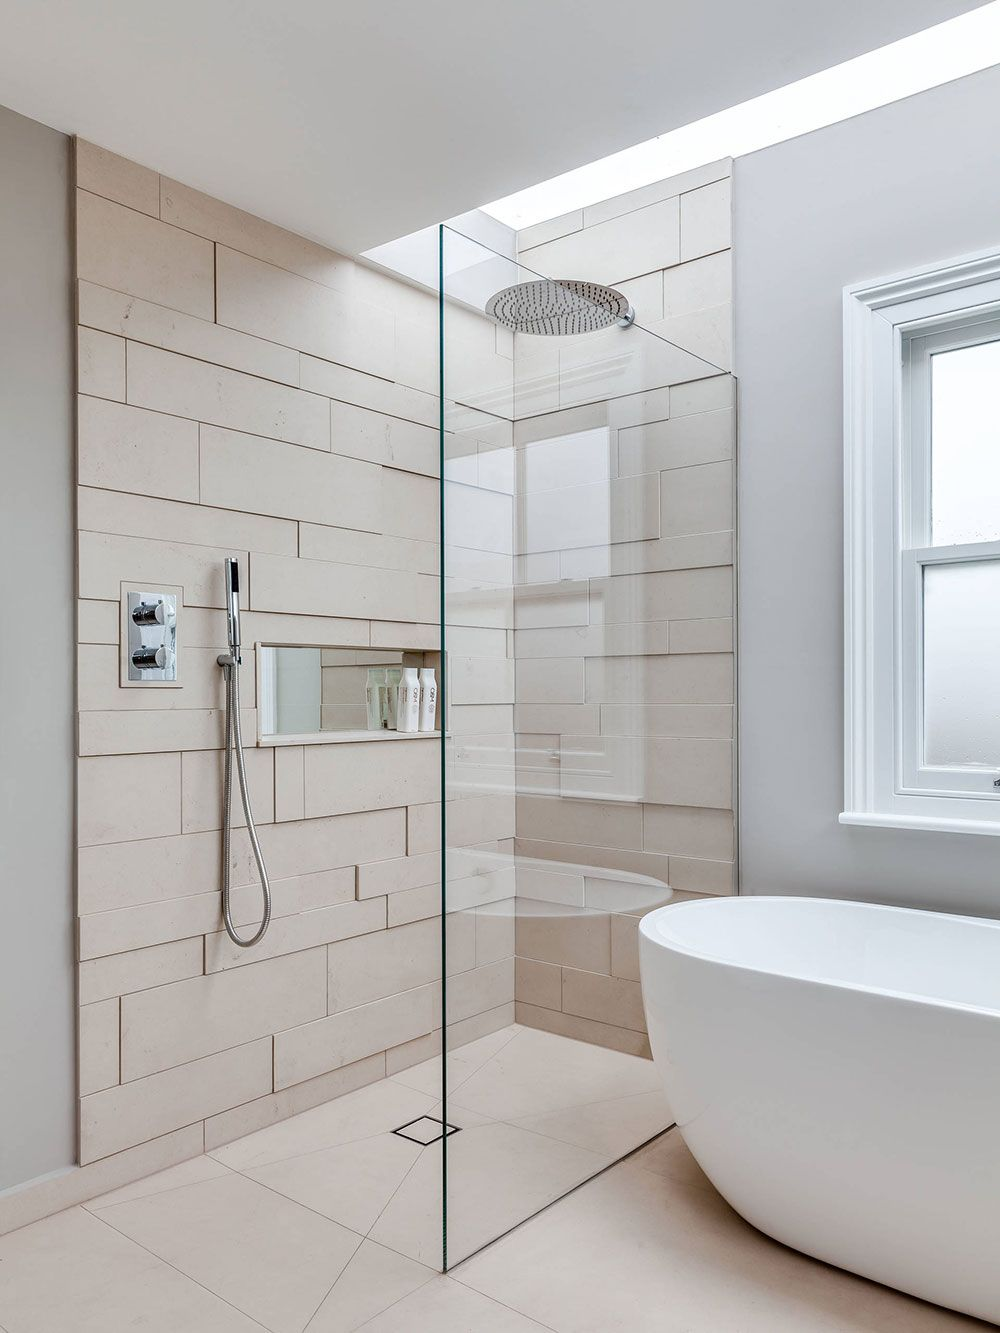 Wet Room Decor And Design Ideas | Wet rooms, Room decor and Room